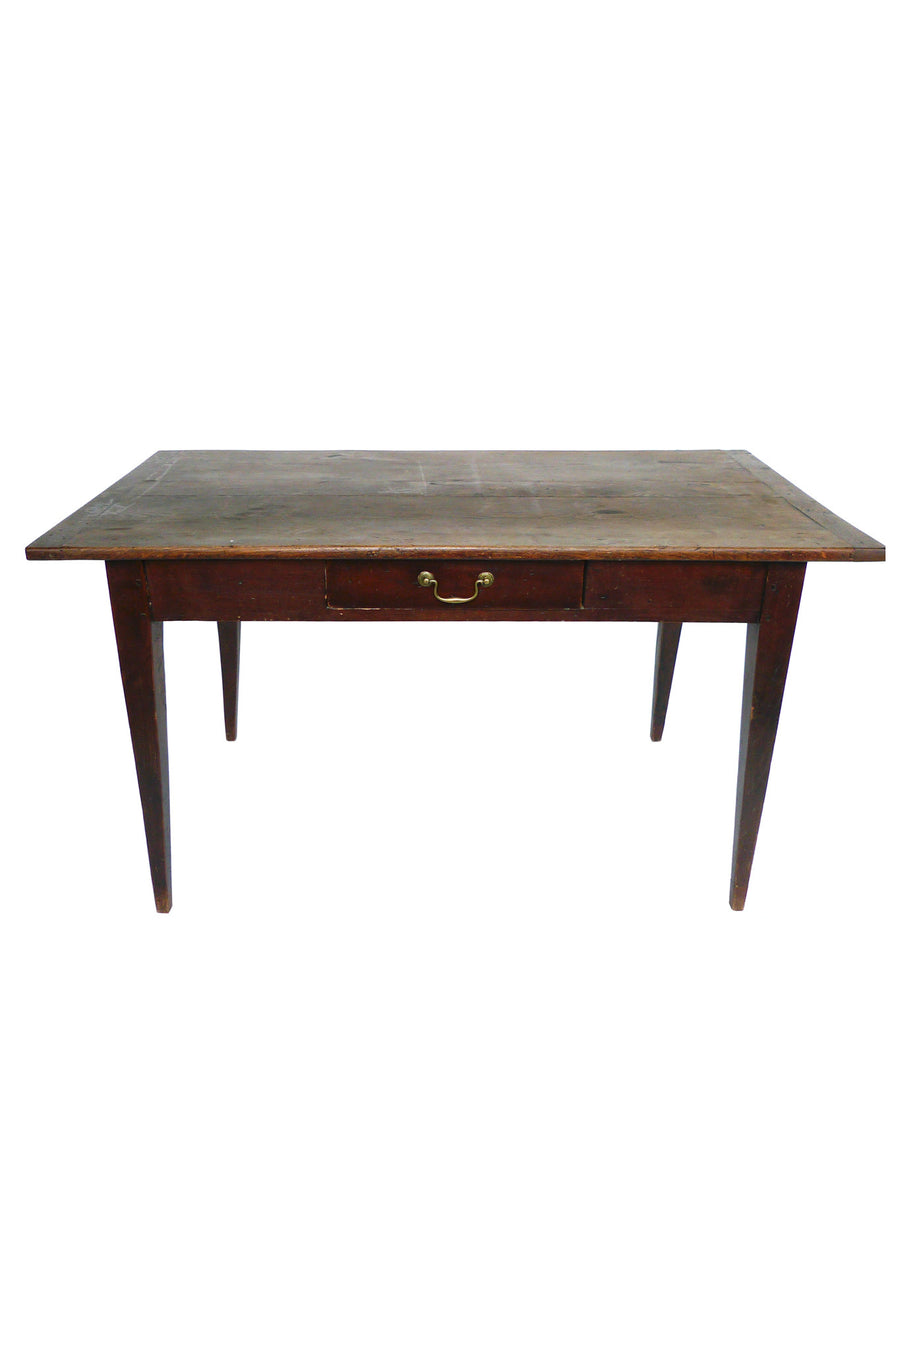 Early 19th Century Shaker-Style Desk